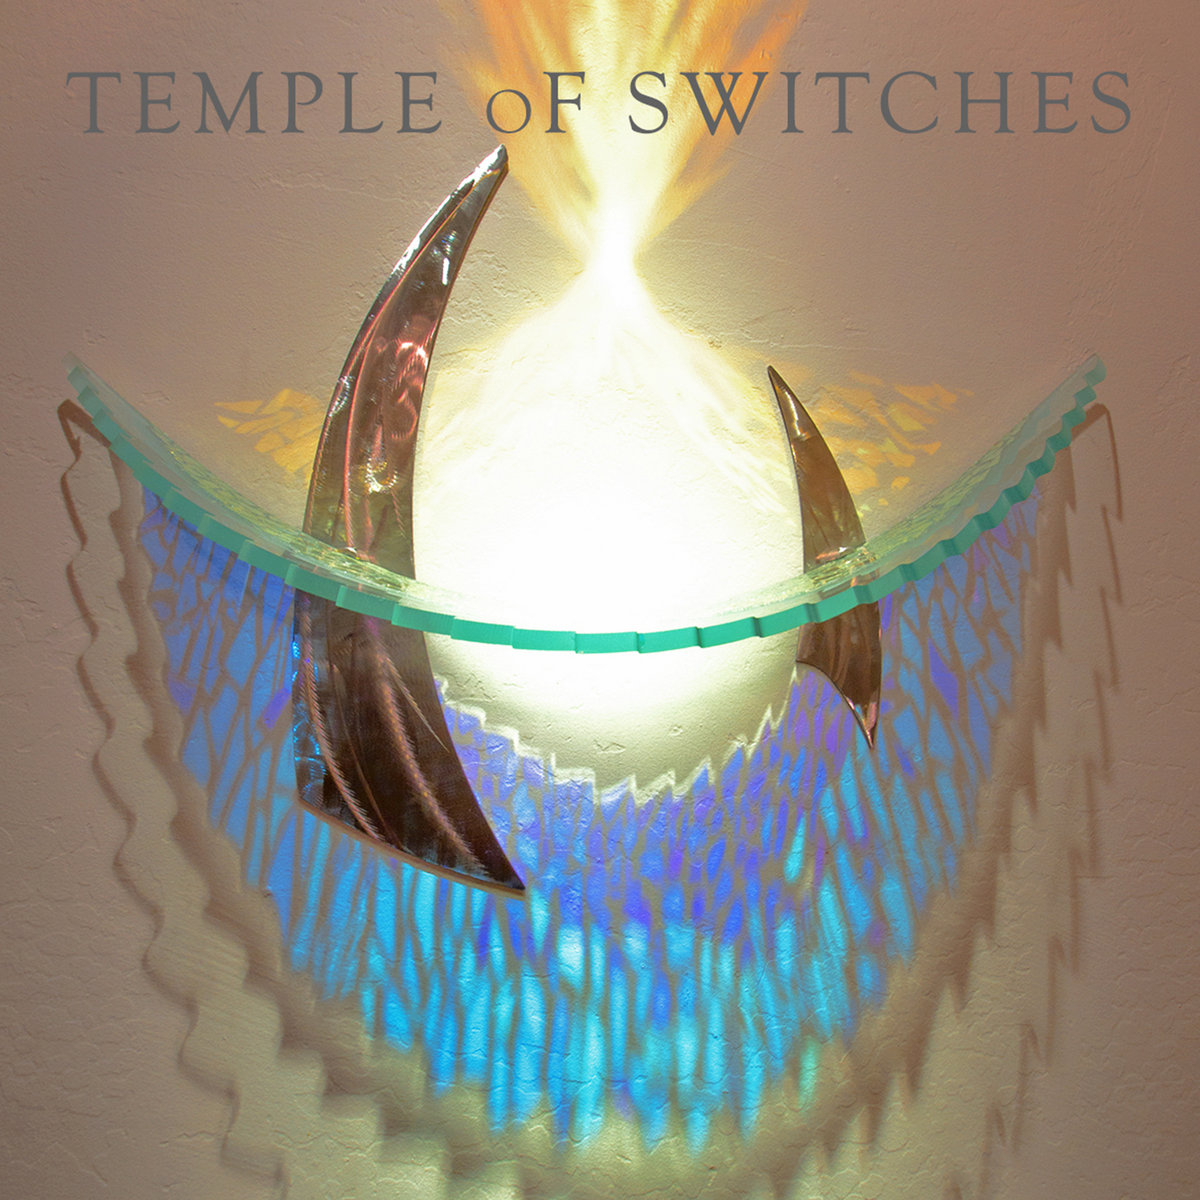 Temple of Switches — Temple of Switches